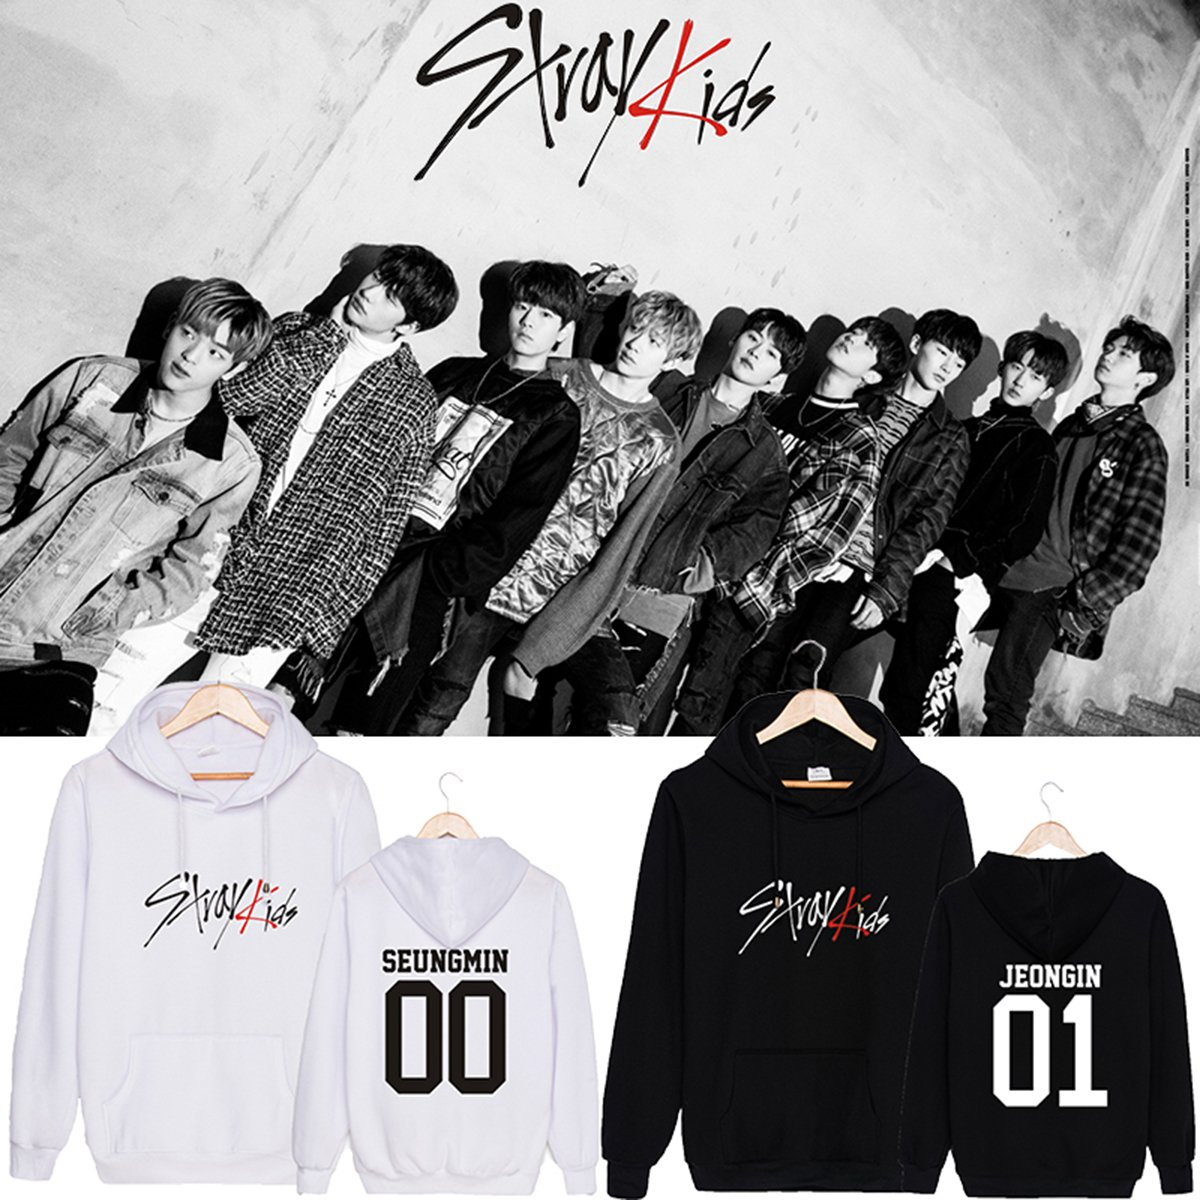 CHAIRAY Kpop Stray Kids Hoodie Sweatshirt ChangBin HyunJin Woojin Sweater by CHAIRAY (Image #2)